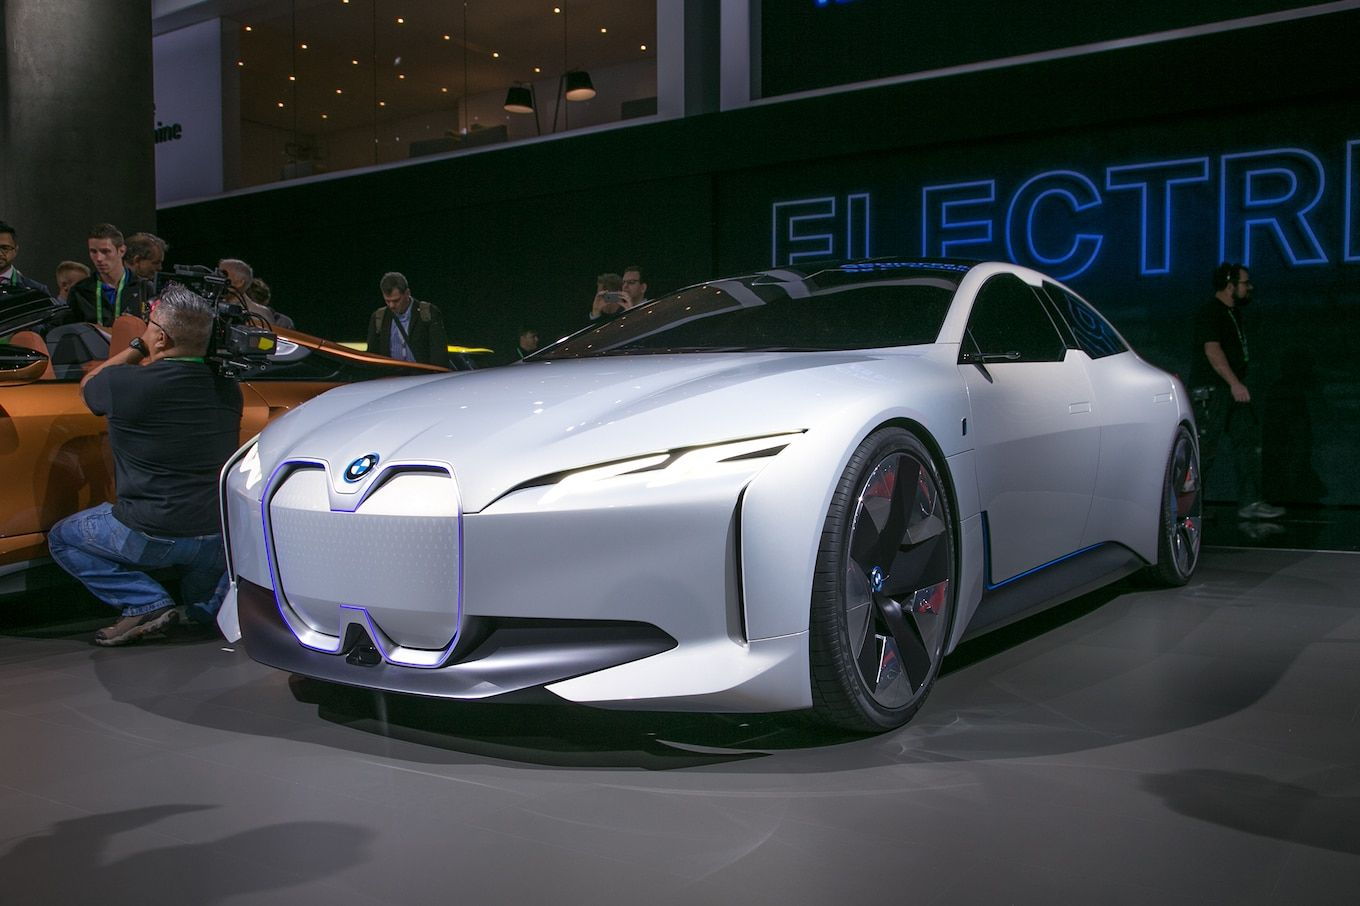 By 2021 Bmw Promises It Will Have The Technology To Offer Evs With A 435 Mile Range As Well Plug In Hybrids All Electric Ranges Of 62 Miles